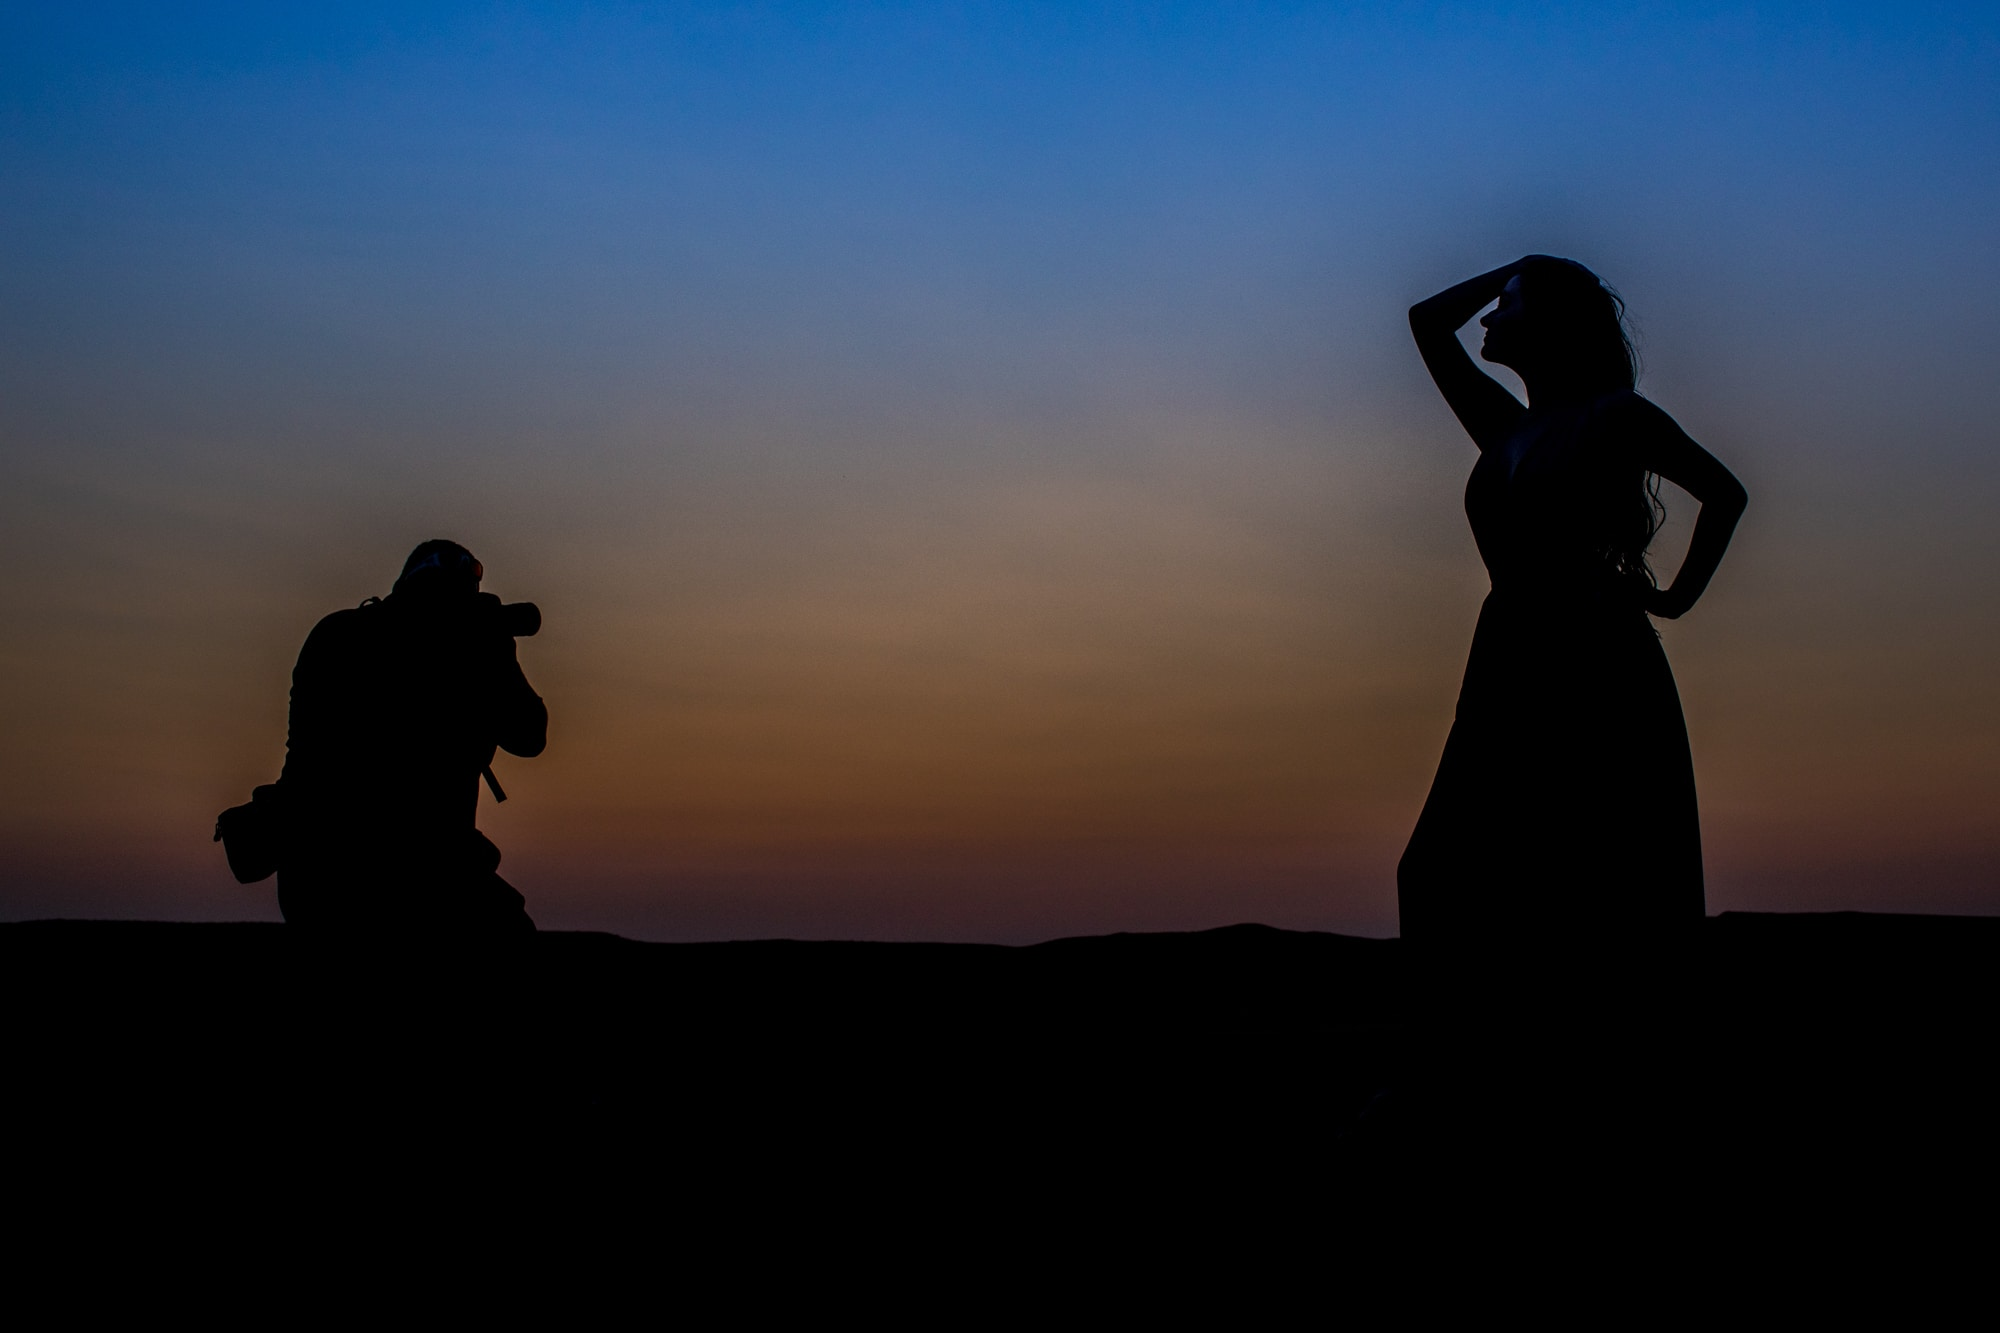 photographer and model silhouetted against the sunset